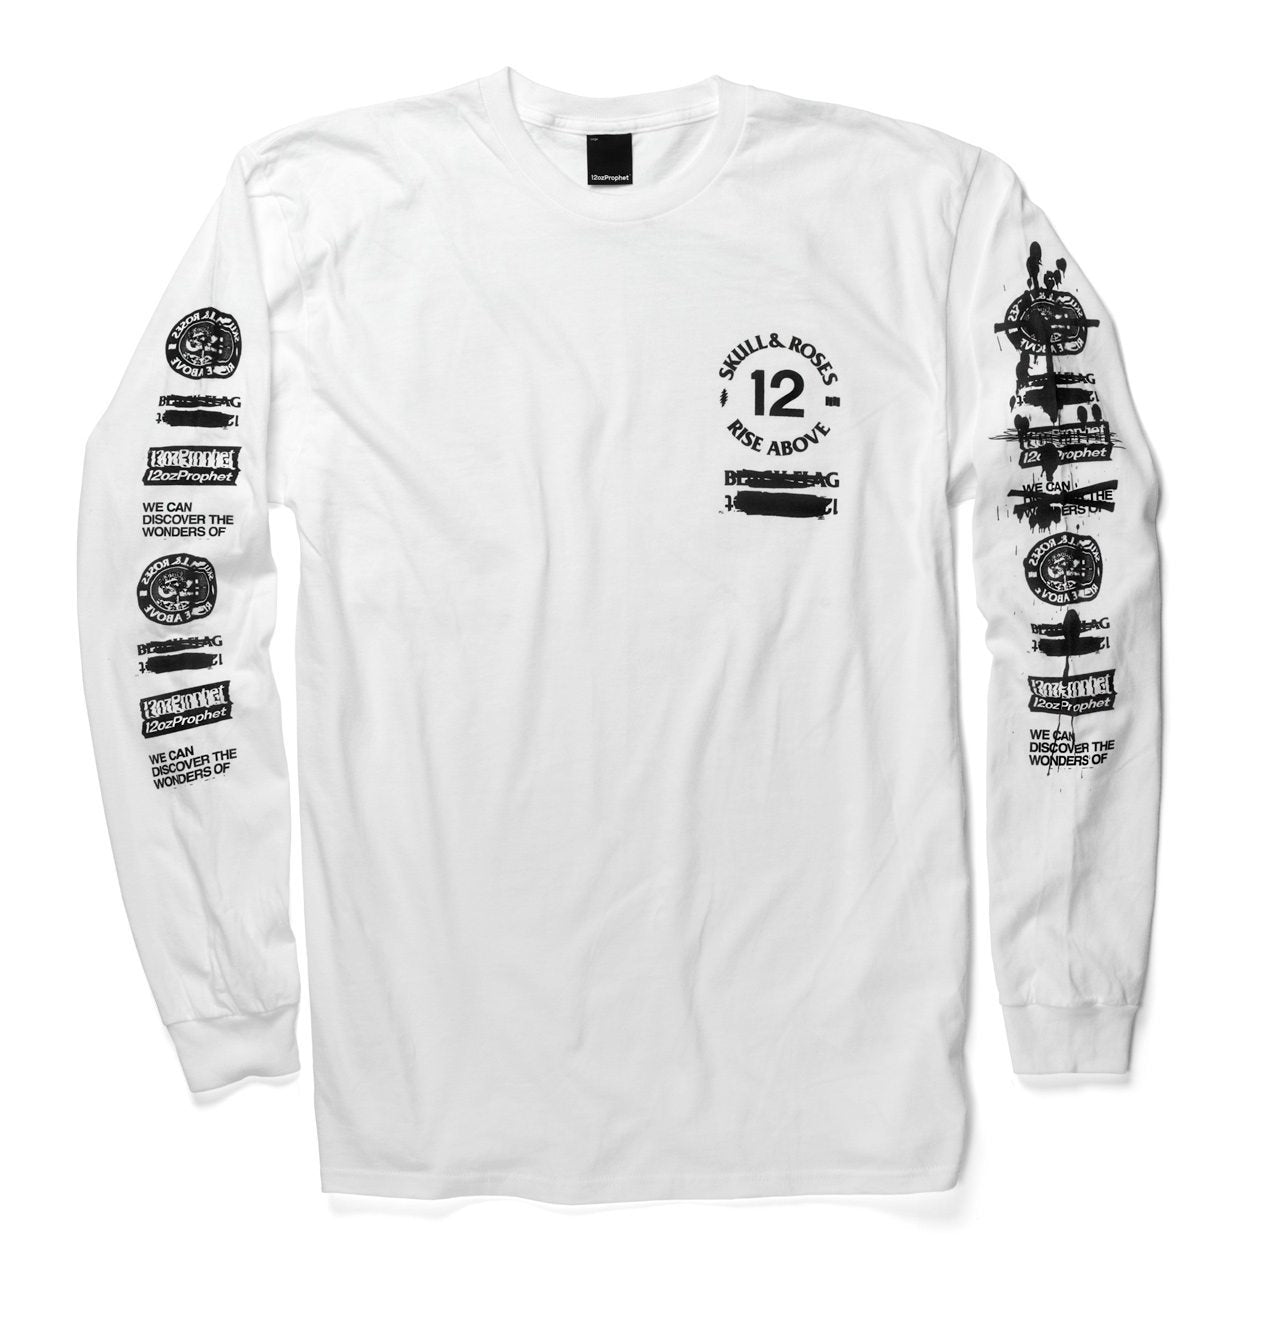 12ozProphet x WOBF Long Sleeve Tee